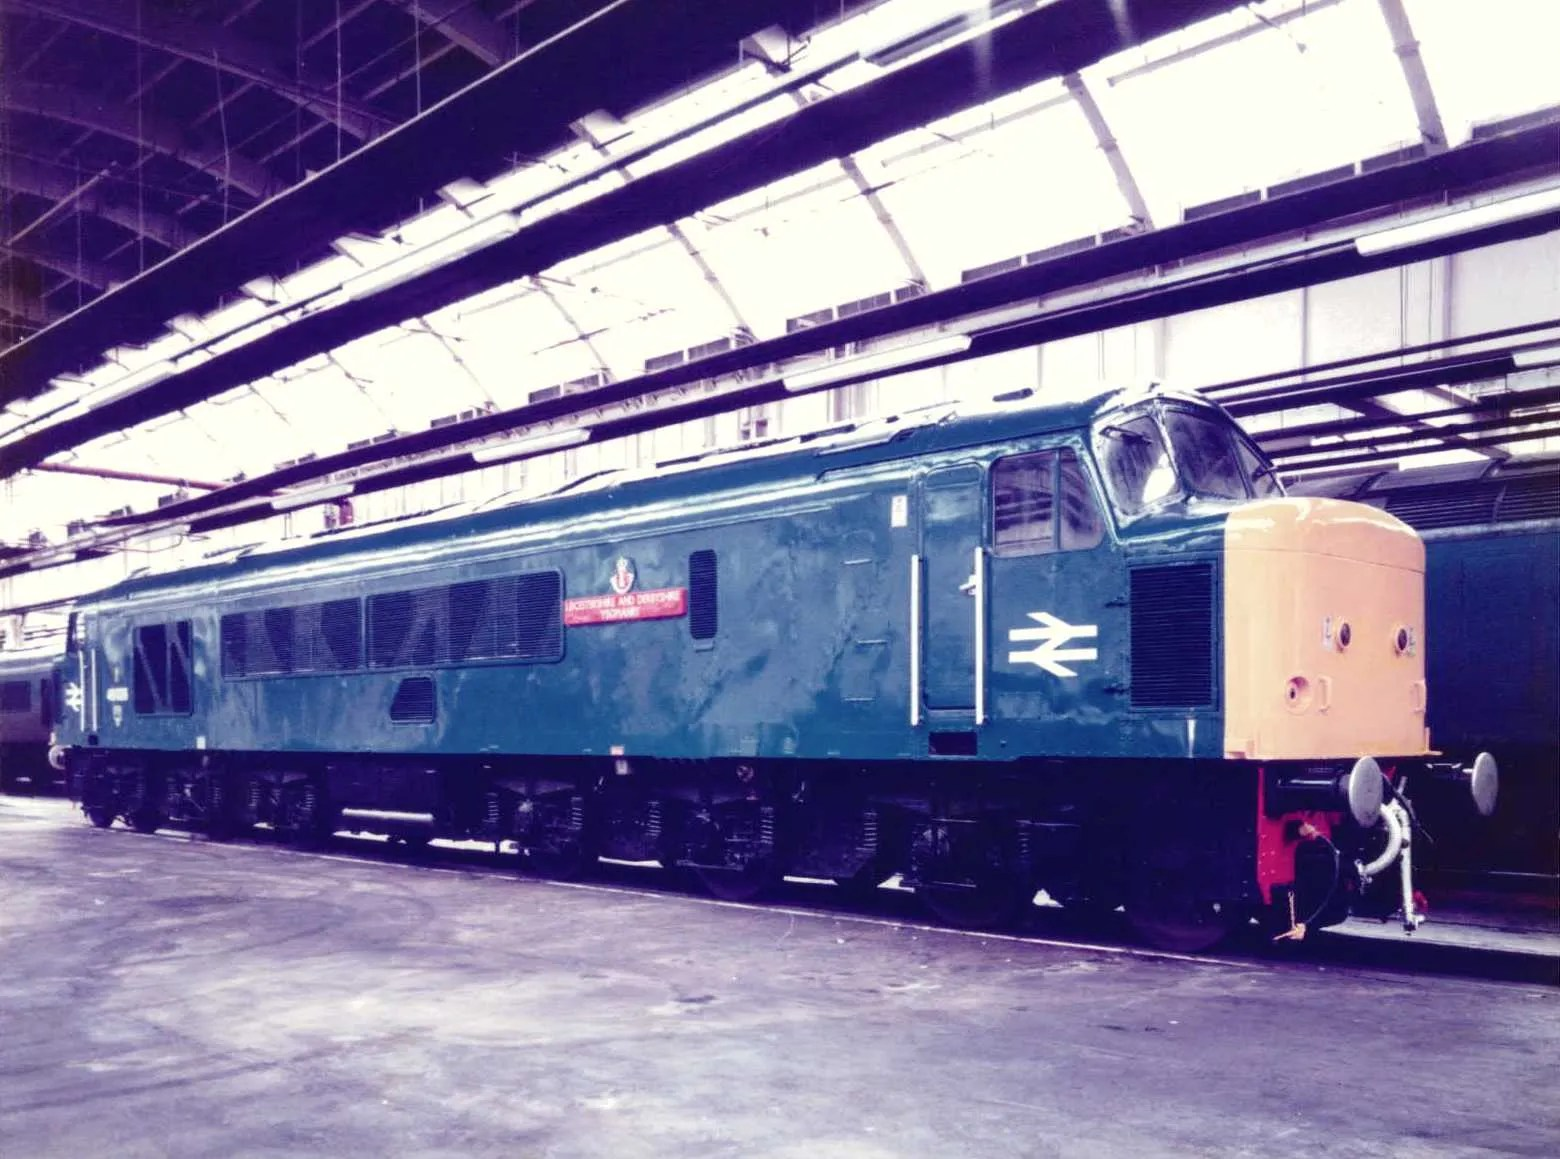 Peak Class 46 diesel locomotive 46026 at Gateshead depot